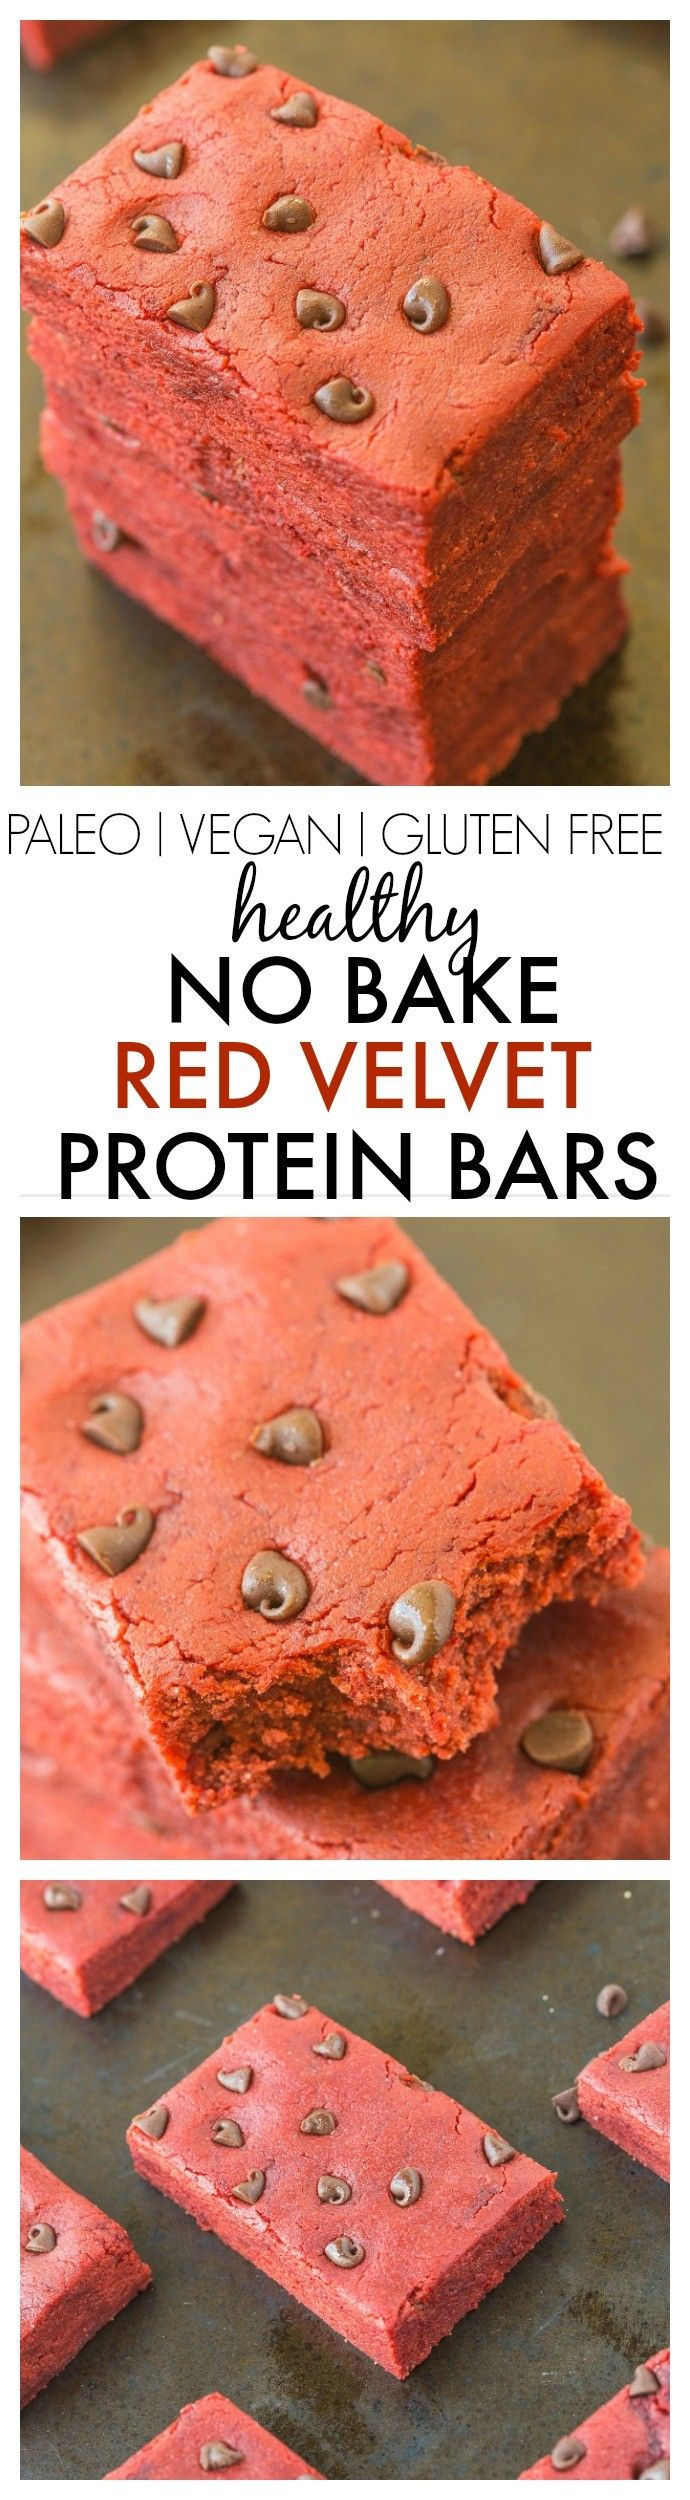 Healthy No Bake Red Velvet Protein Bars- 10 minutes and 1 bowl to make these extra chewy, soft and delicious snack bars- No added sugar too! Perfect for Valentine's day too!{vegan, gluten free, paleo, sugar free recipe}- thebigmansworld.com